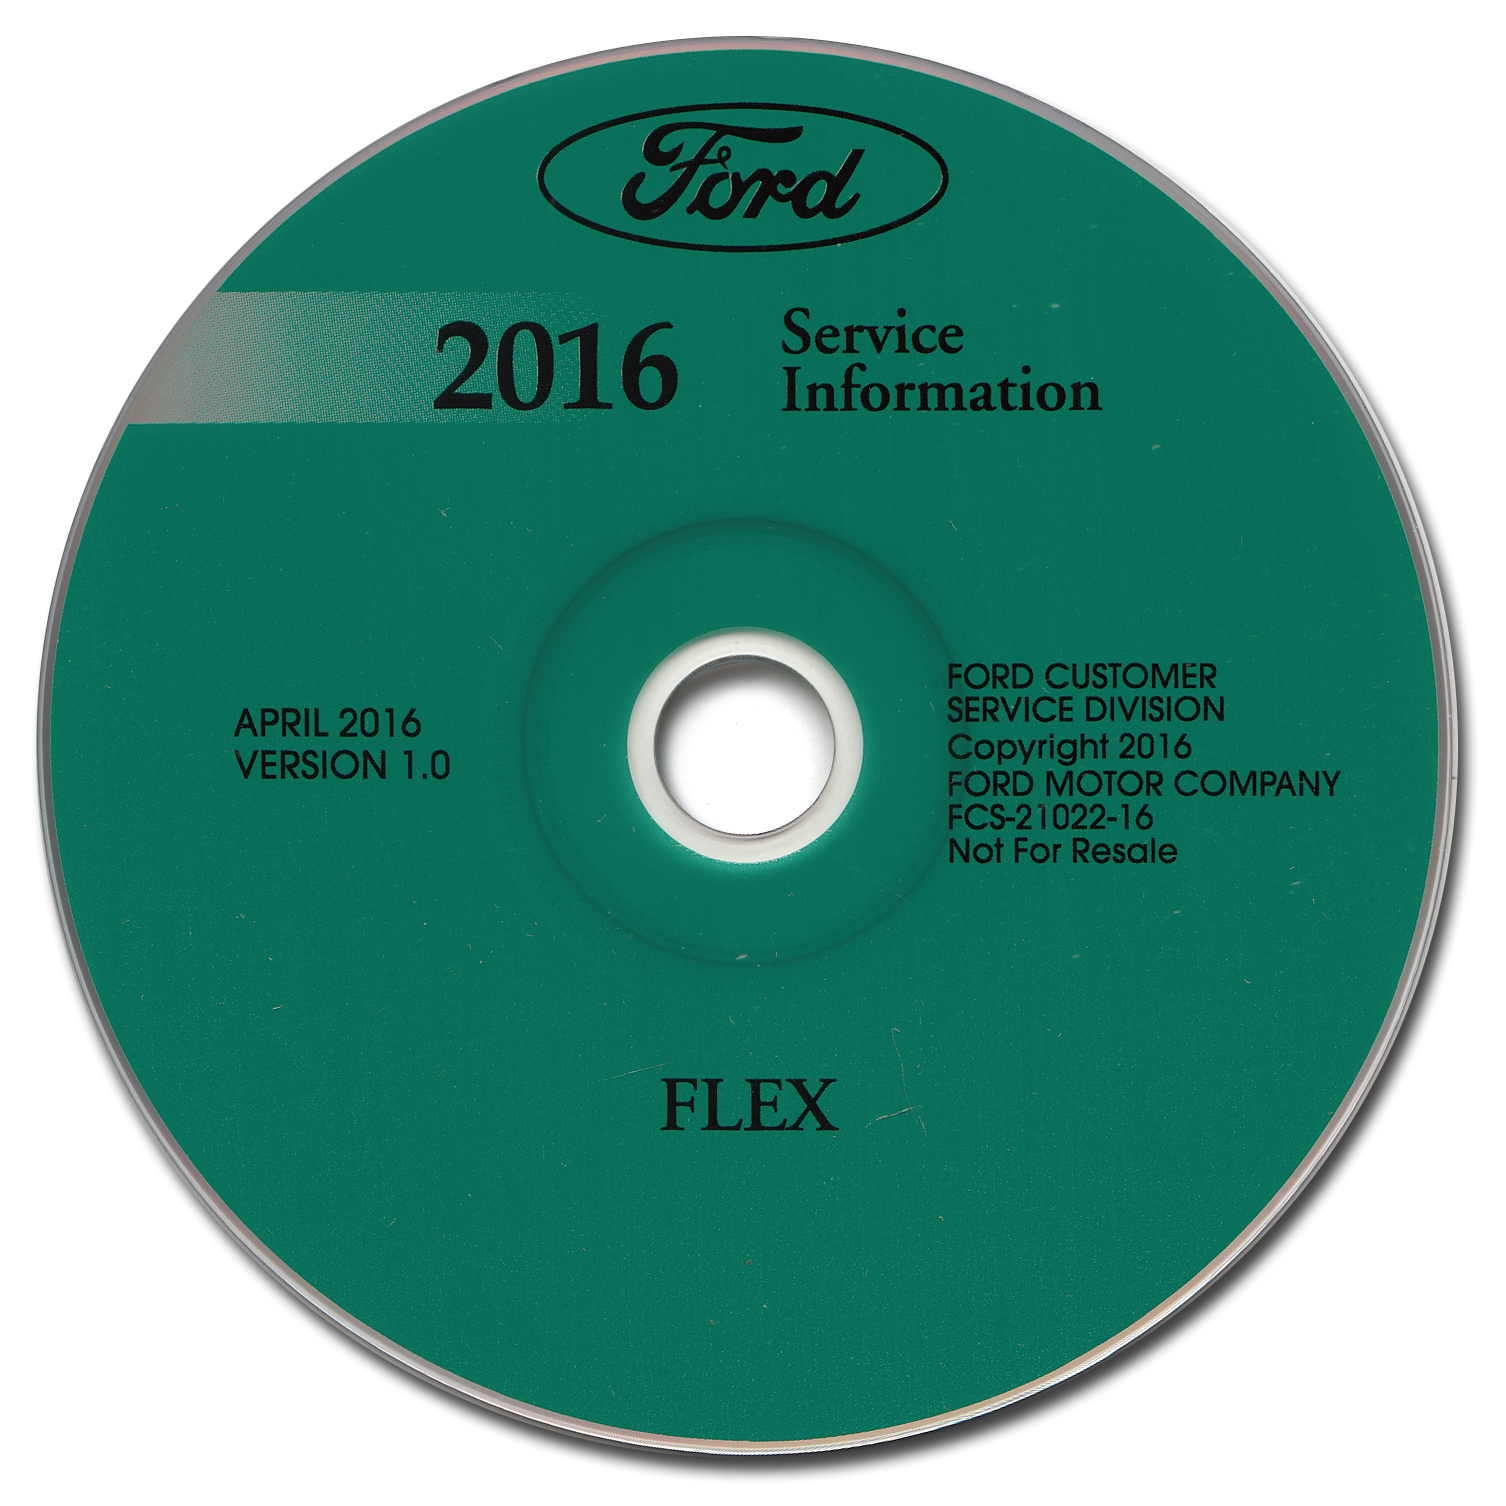 2016 Ford Flex Repair Shop Manual on CD-ROM Original